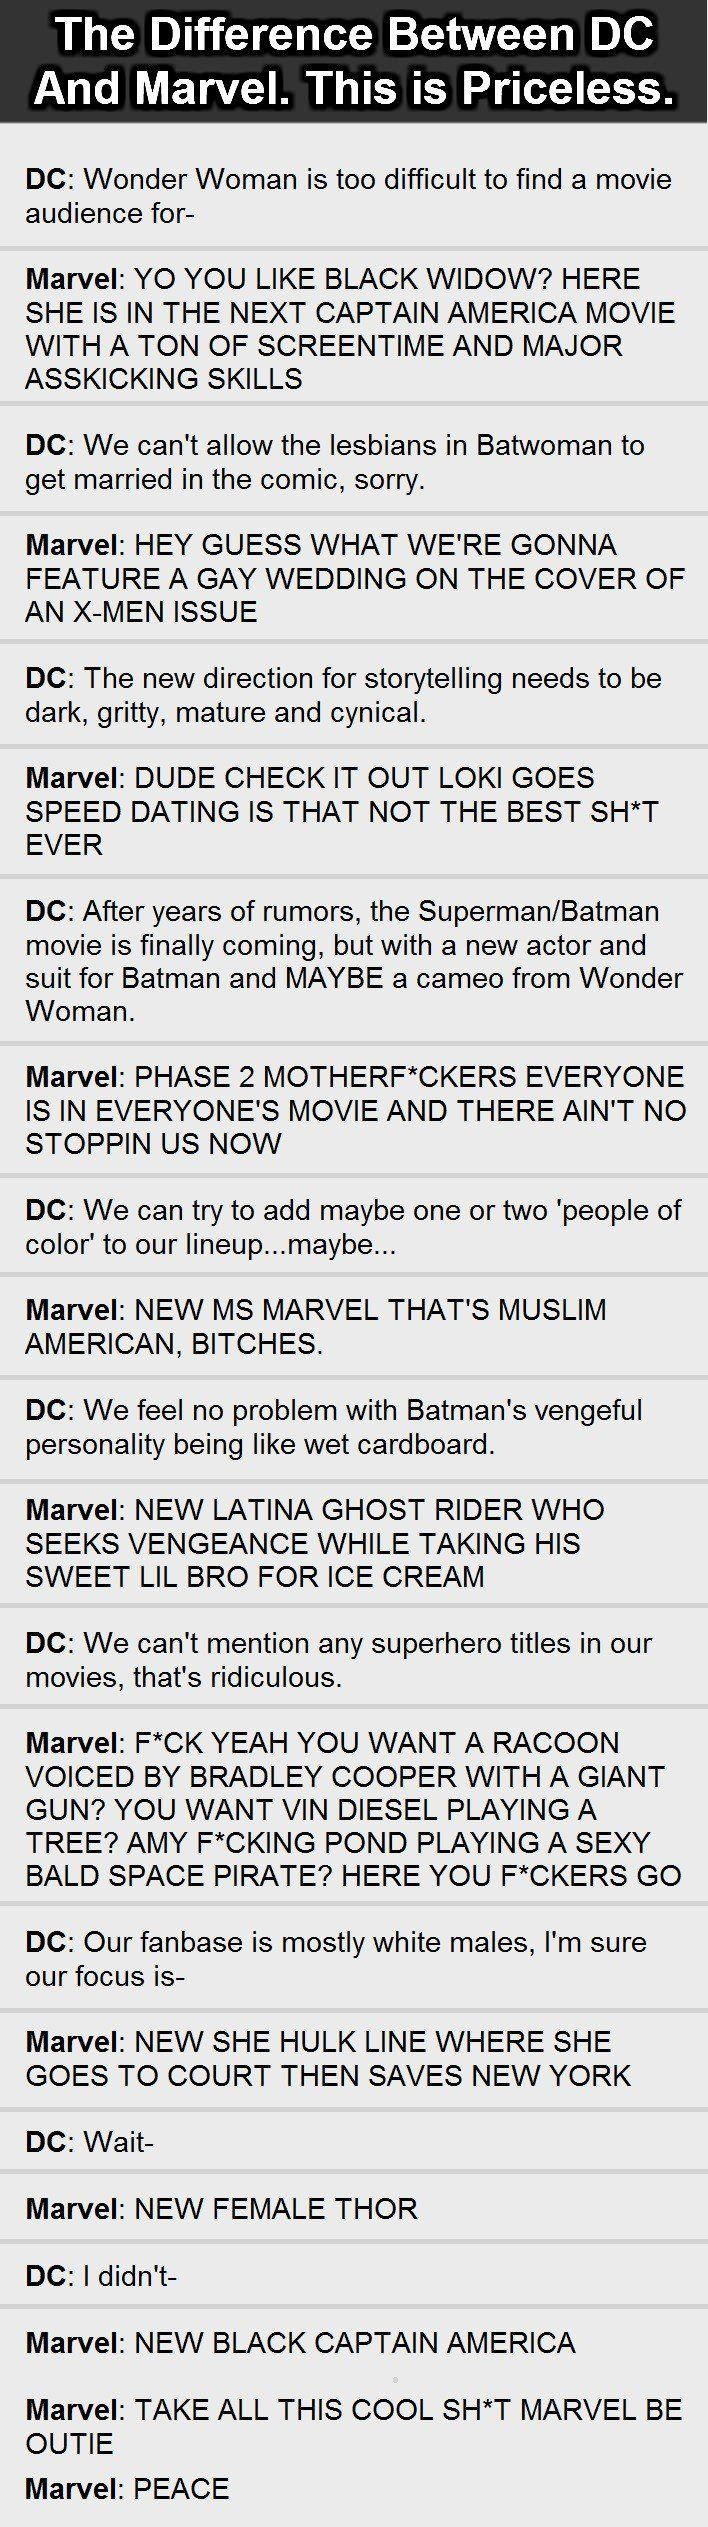 The Difference Between DC and Marvel Comics? Priceless. I don't even read these comics and this is seriously funny!